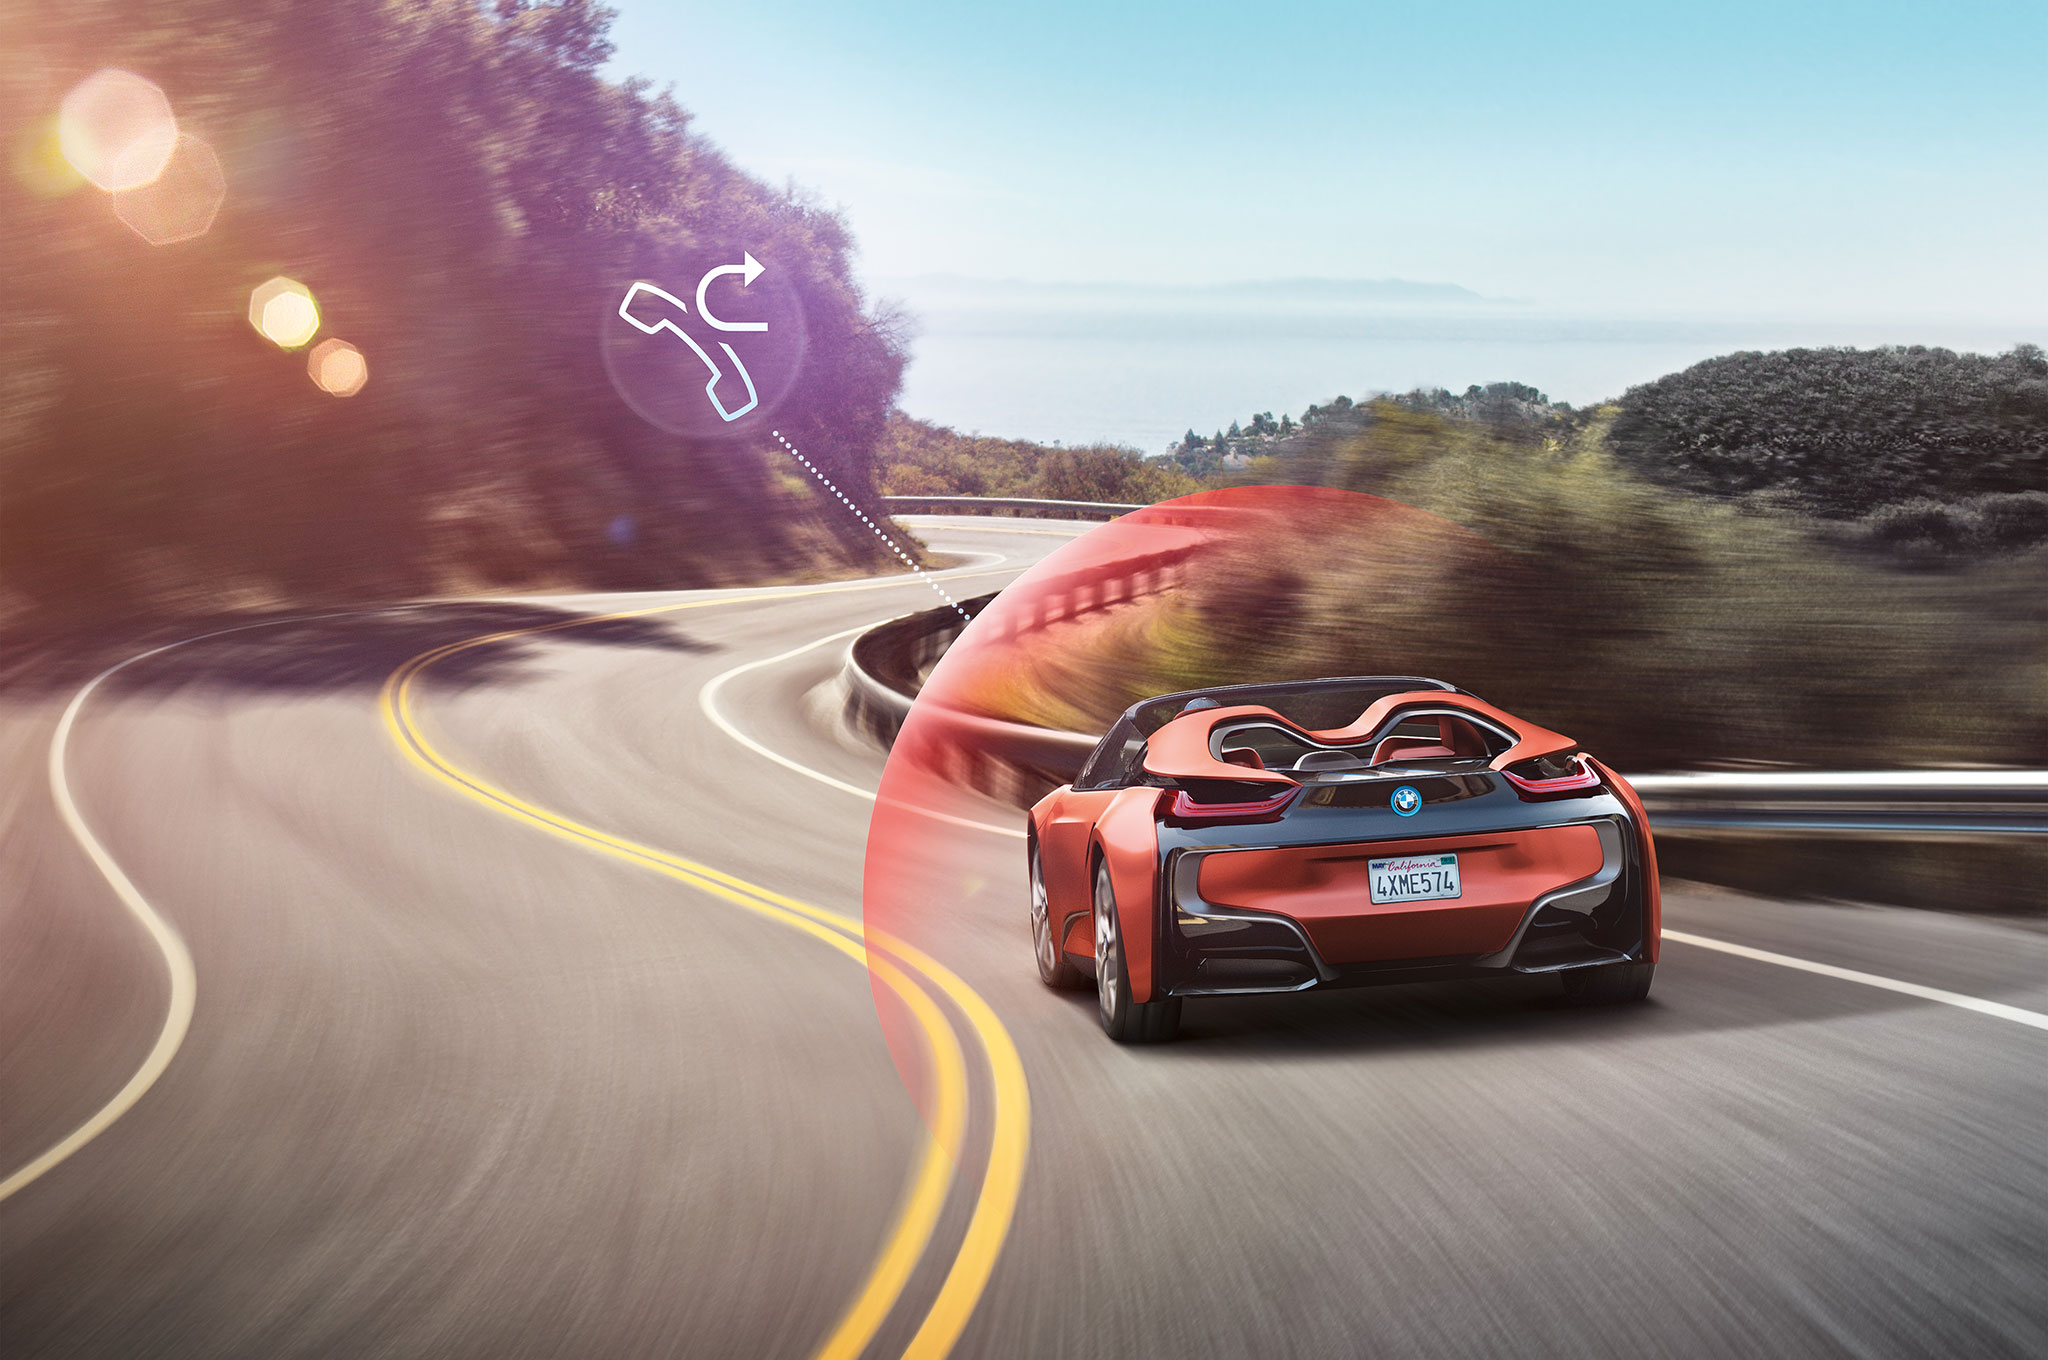 BMW-i-Vision-Future-Interaction-Concept-19-the-tech-news